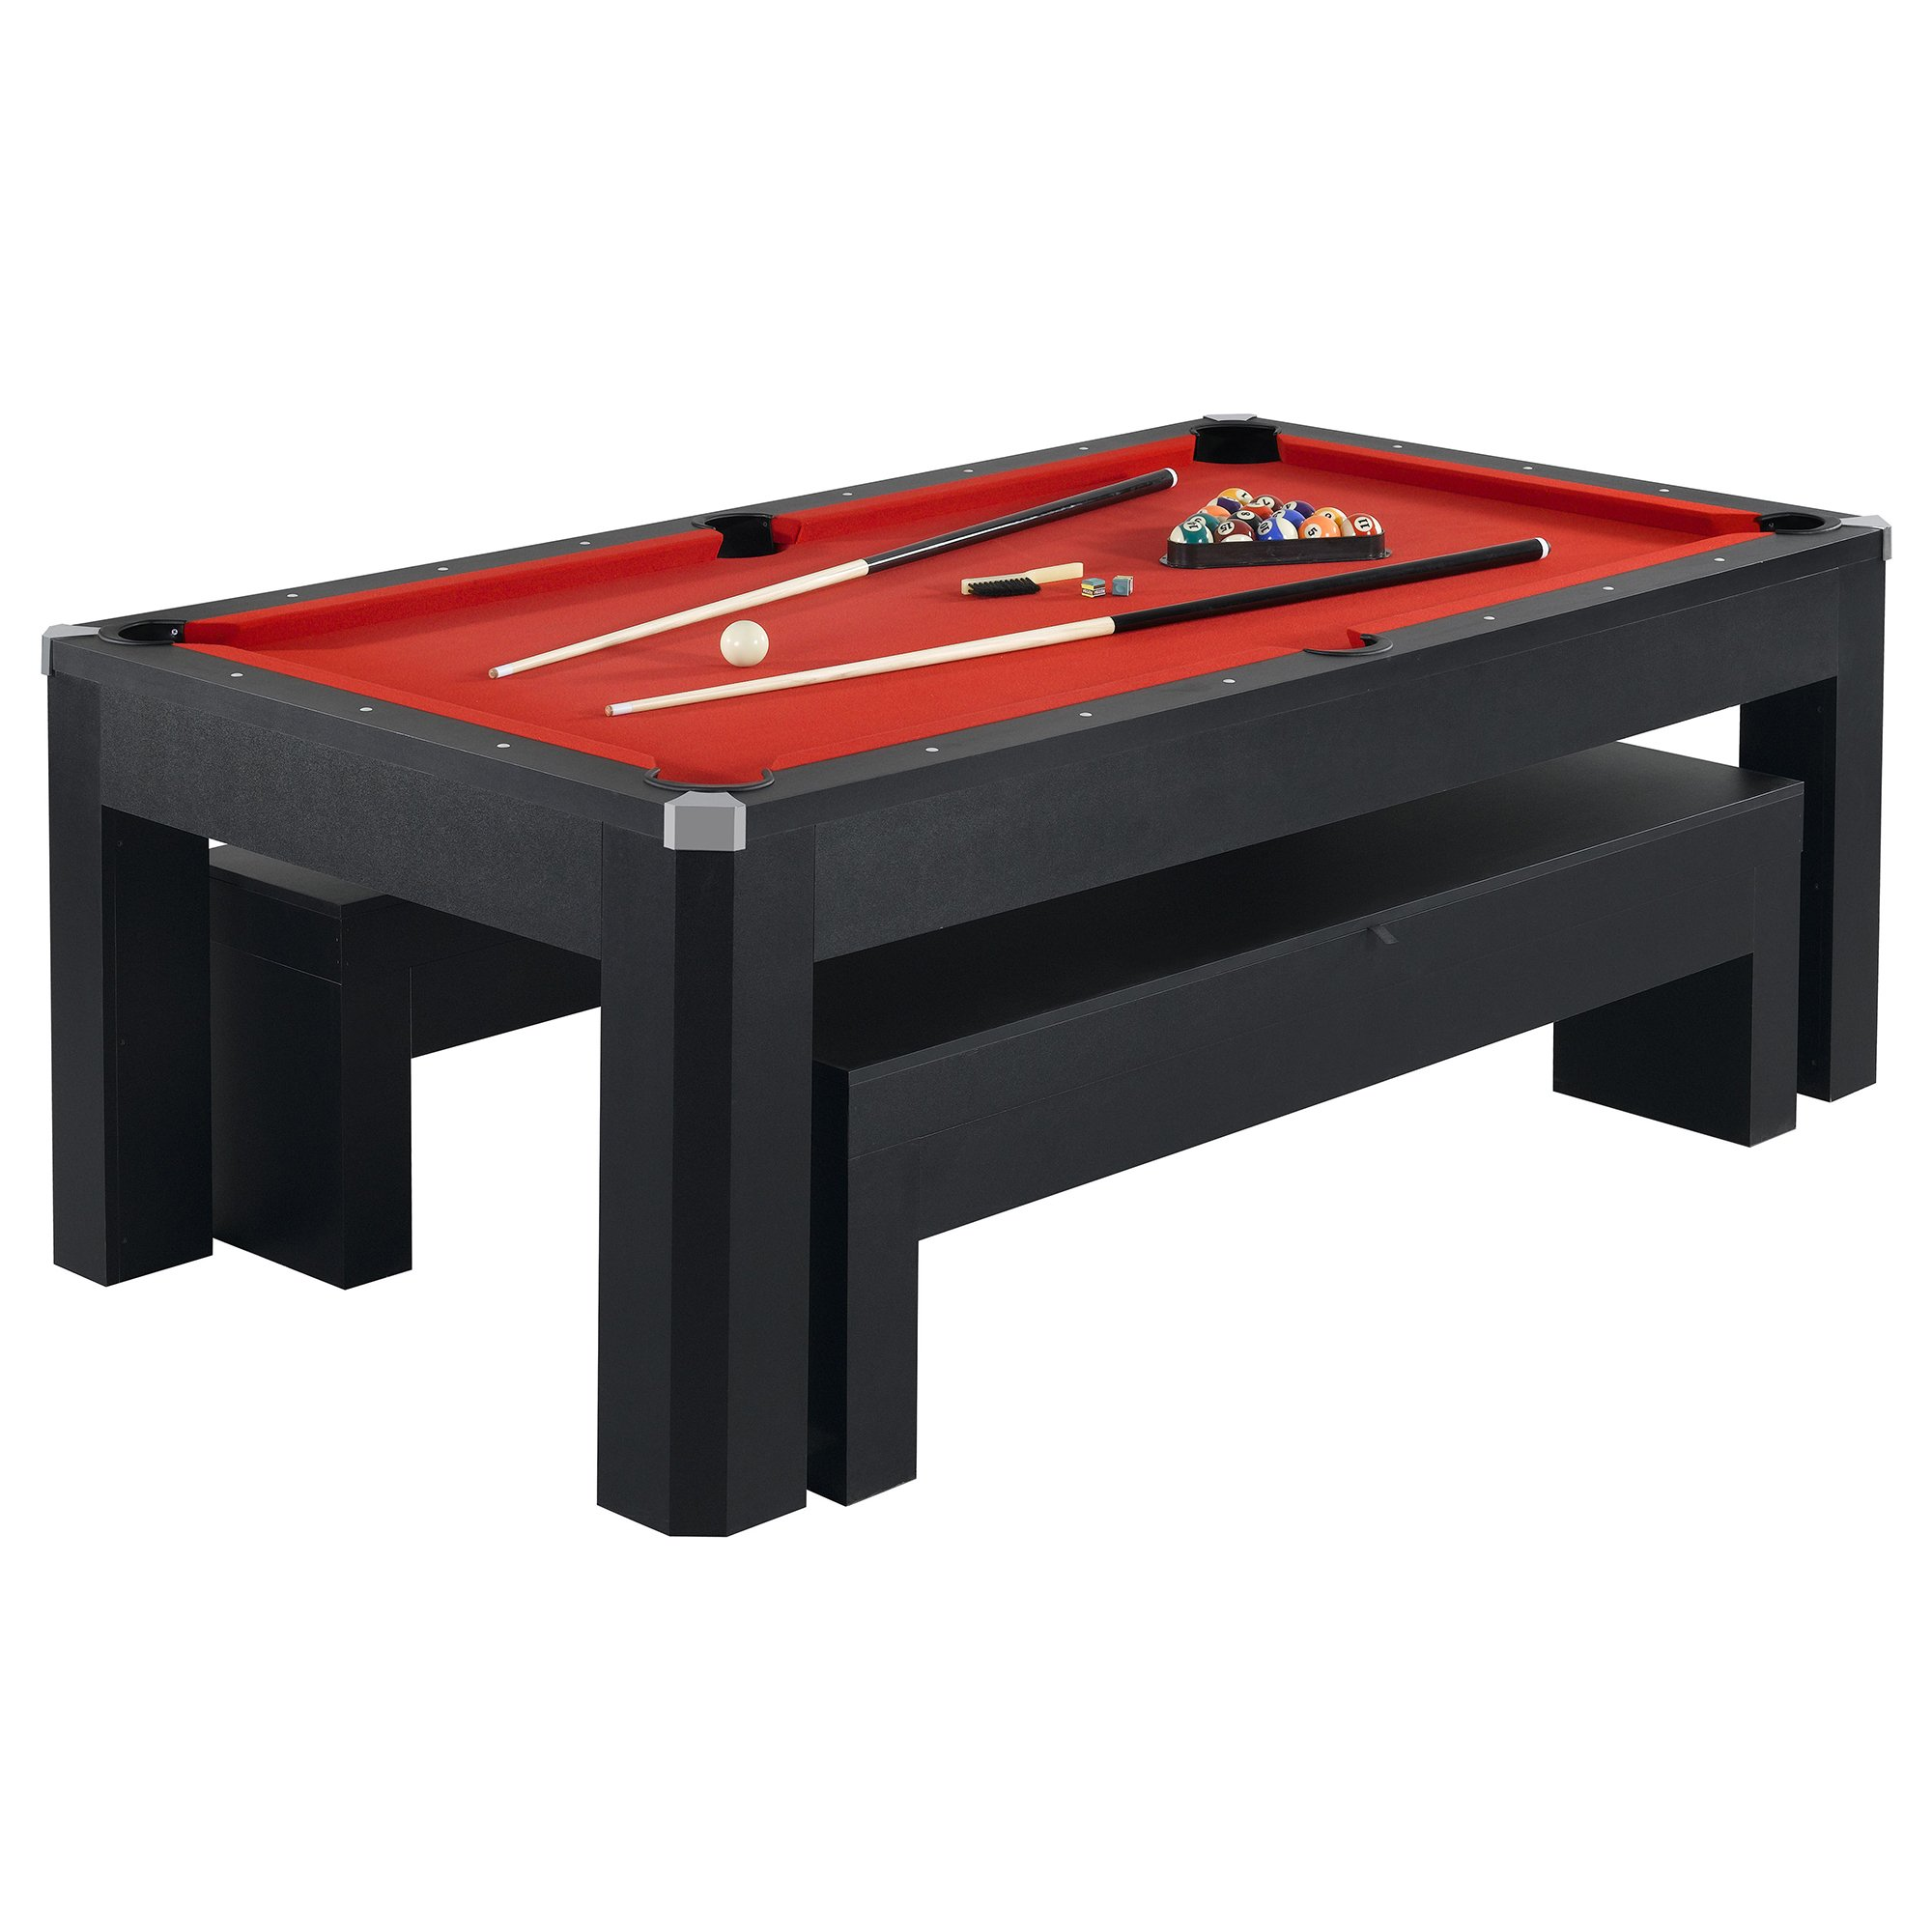 Hathaway Park Avenue 7' Pool Table Tennis Combination with Dining Top, Two Storage Benches, Free Accessories by Hathaway